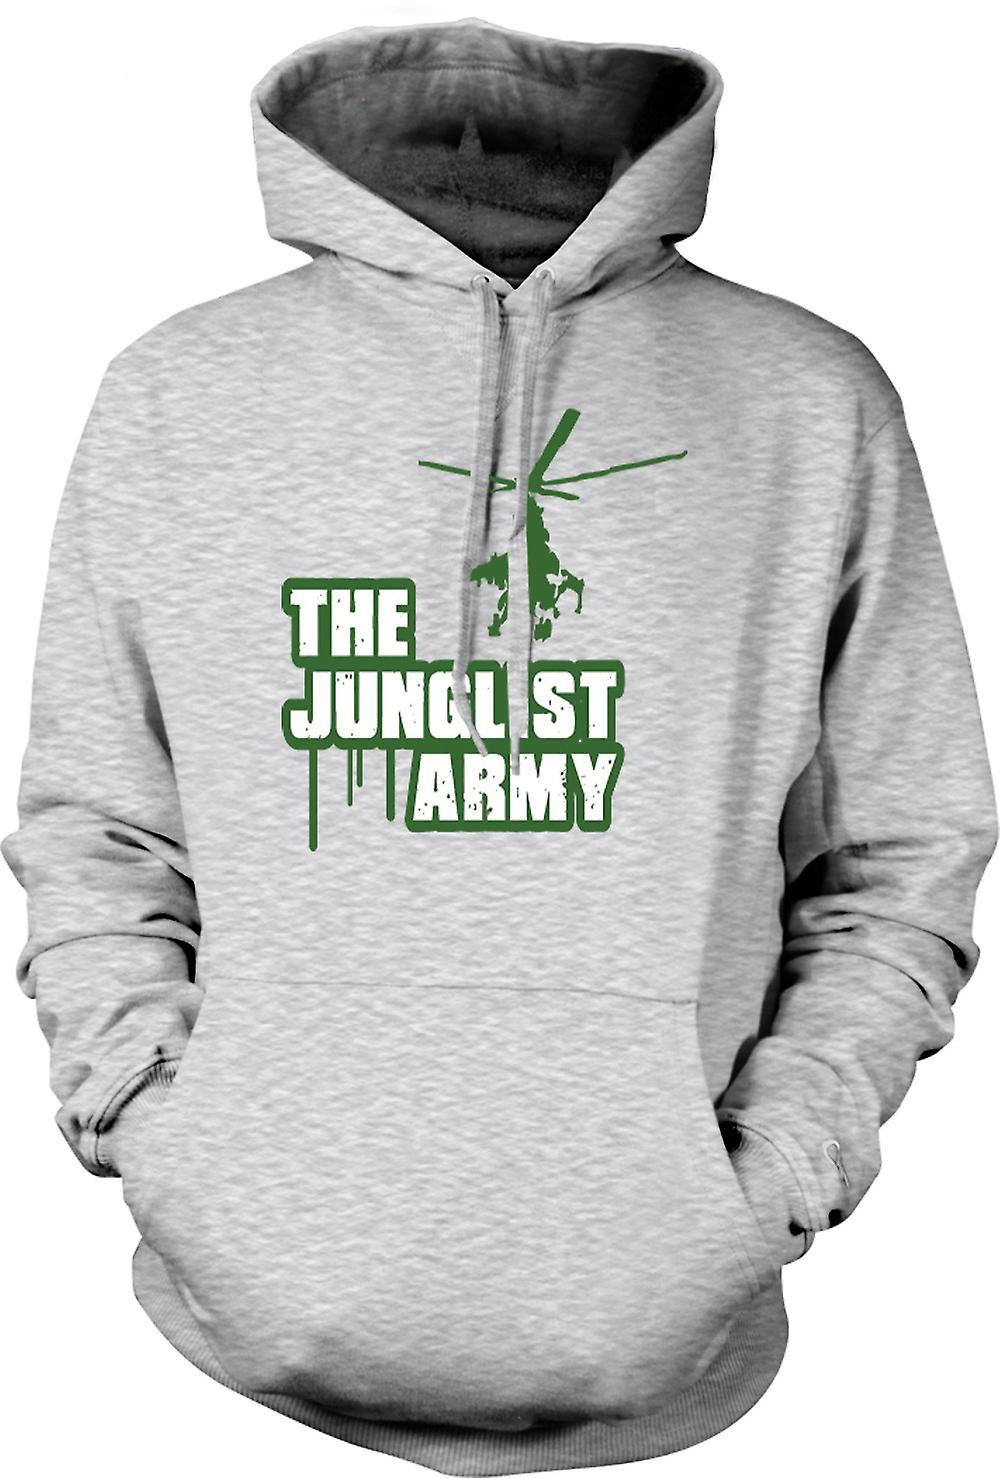 Mens Hoodie - The Junglist Army - Drum n Bass